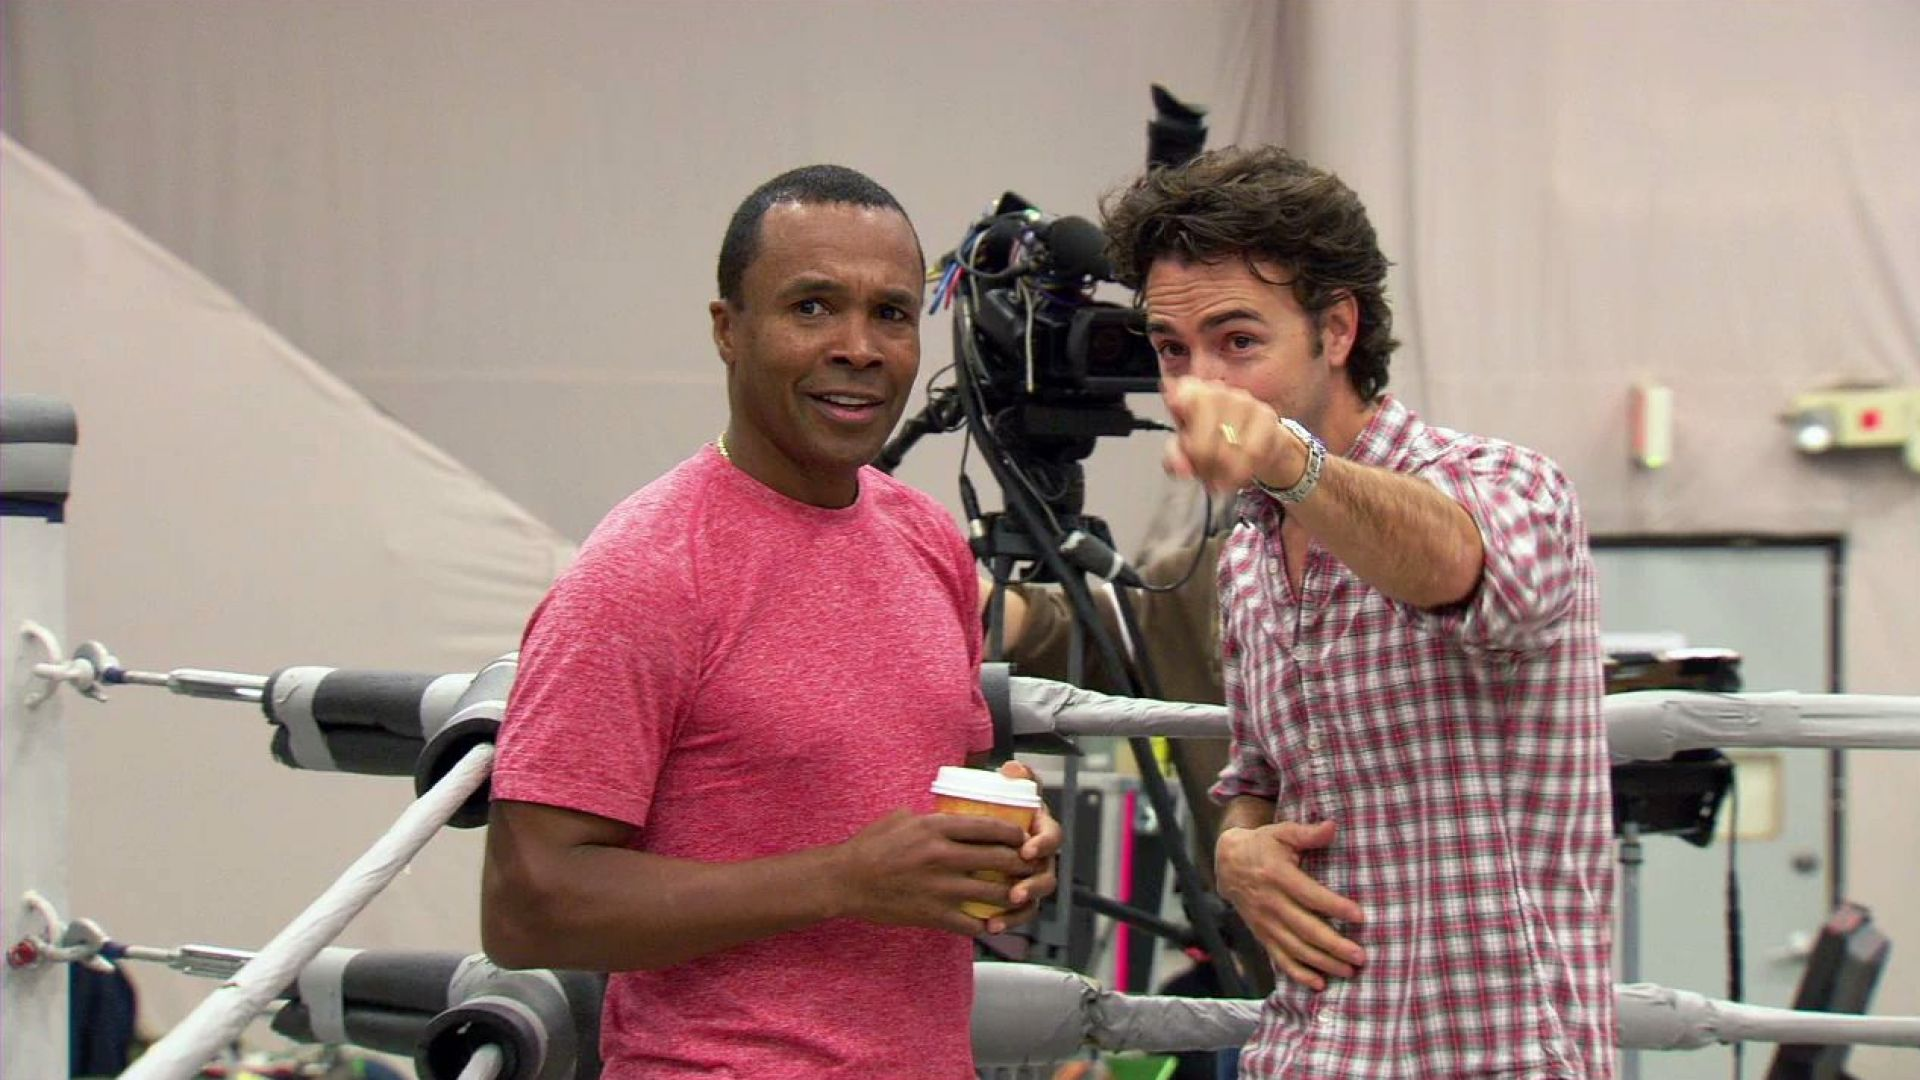 Hugh Jackman and Sugar Ray Leonard talk about working together on Real Steel